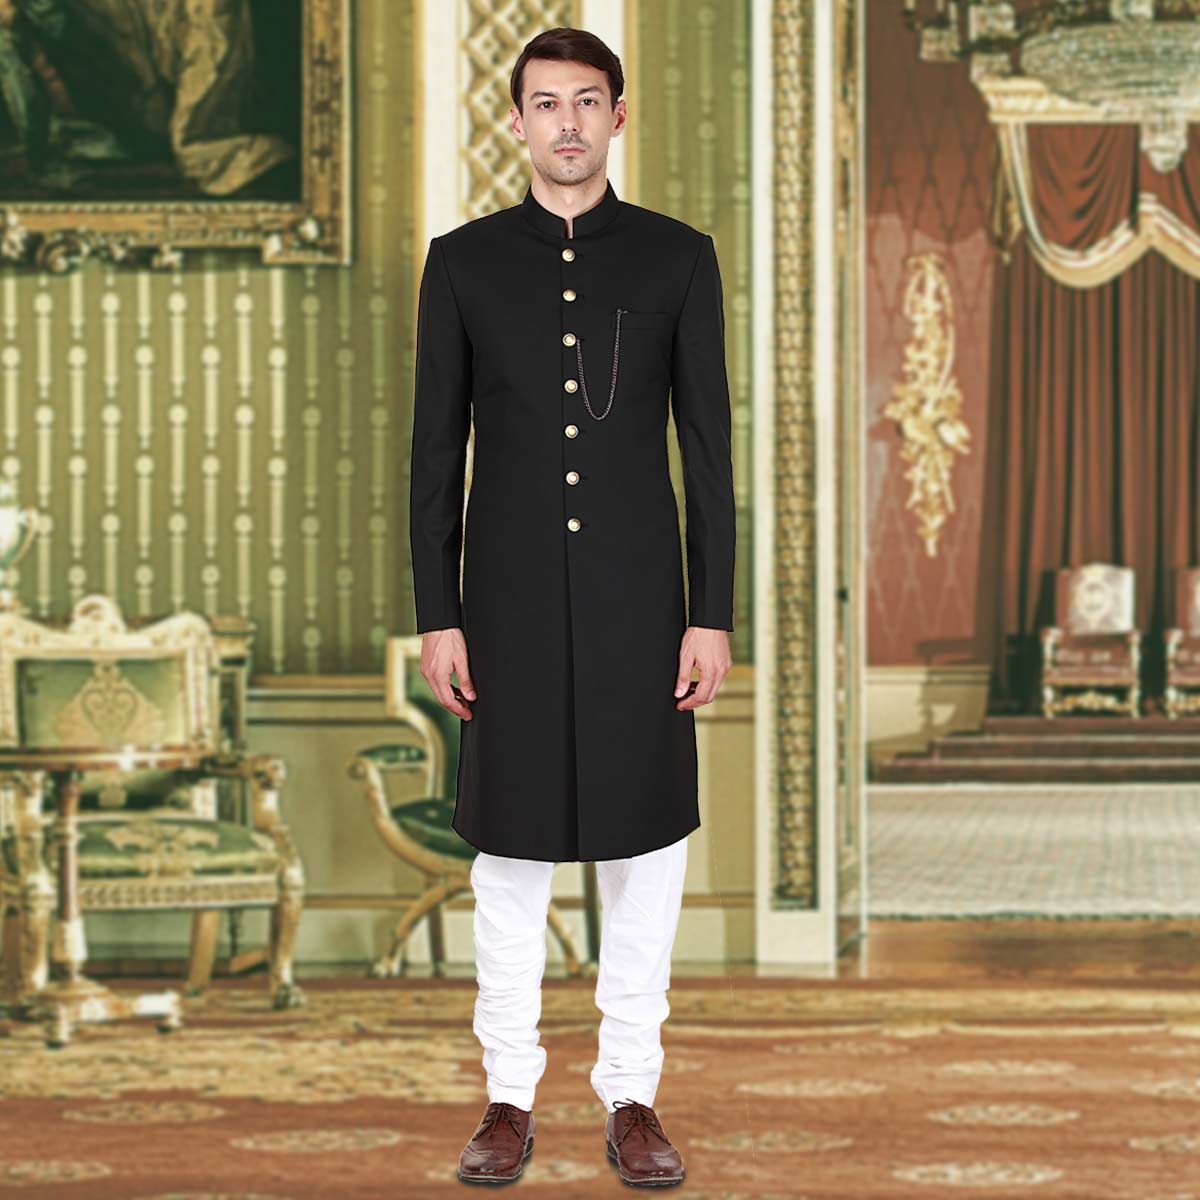 Royal Black Sherwani - Premium Bespoke Suits Online. Men's ...